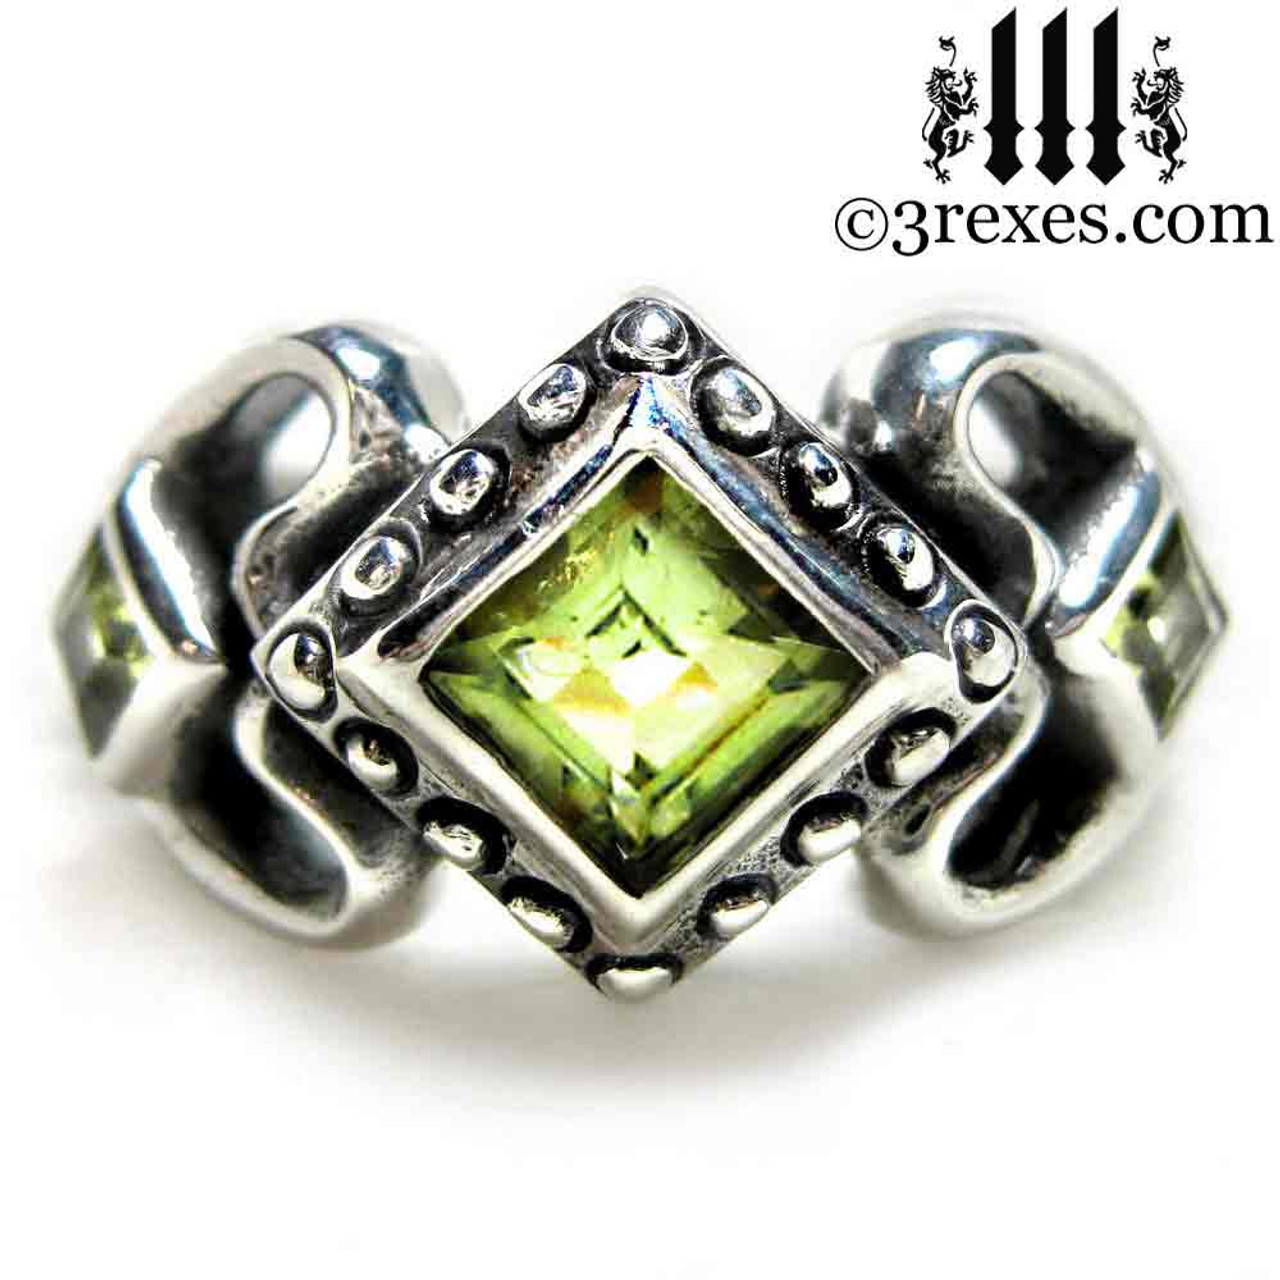 Gothic Wedding Rings.Princess Love Gothic Engagement Ring